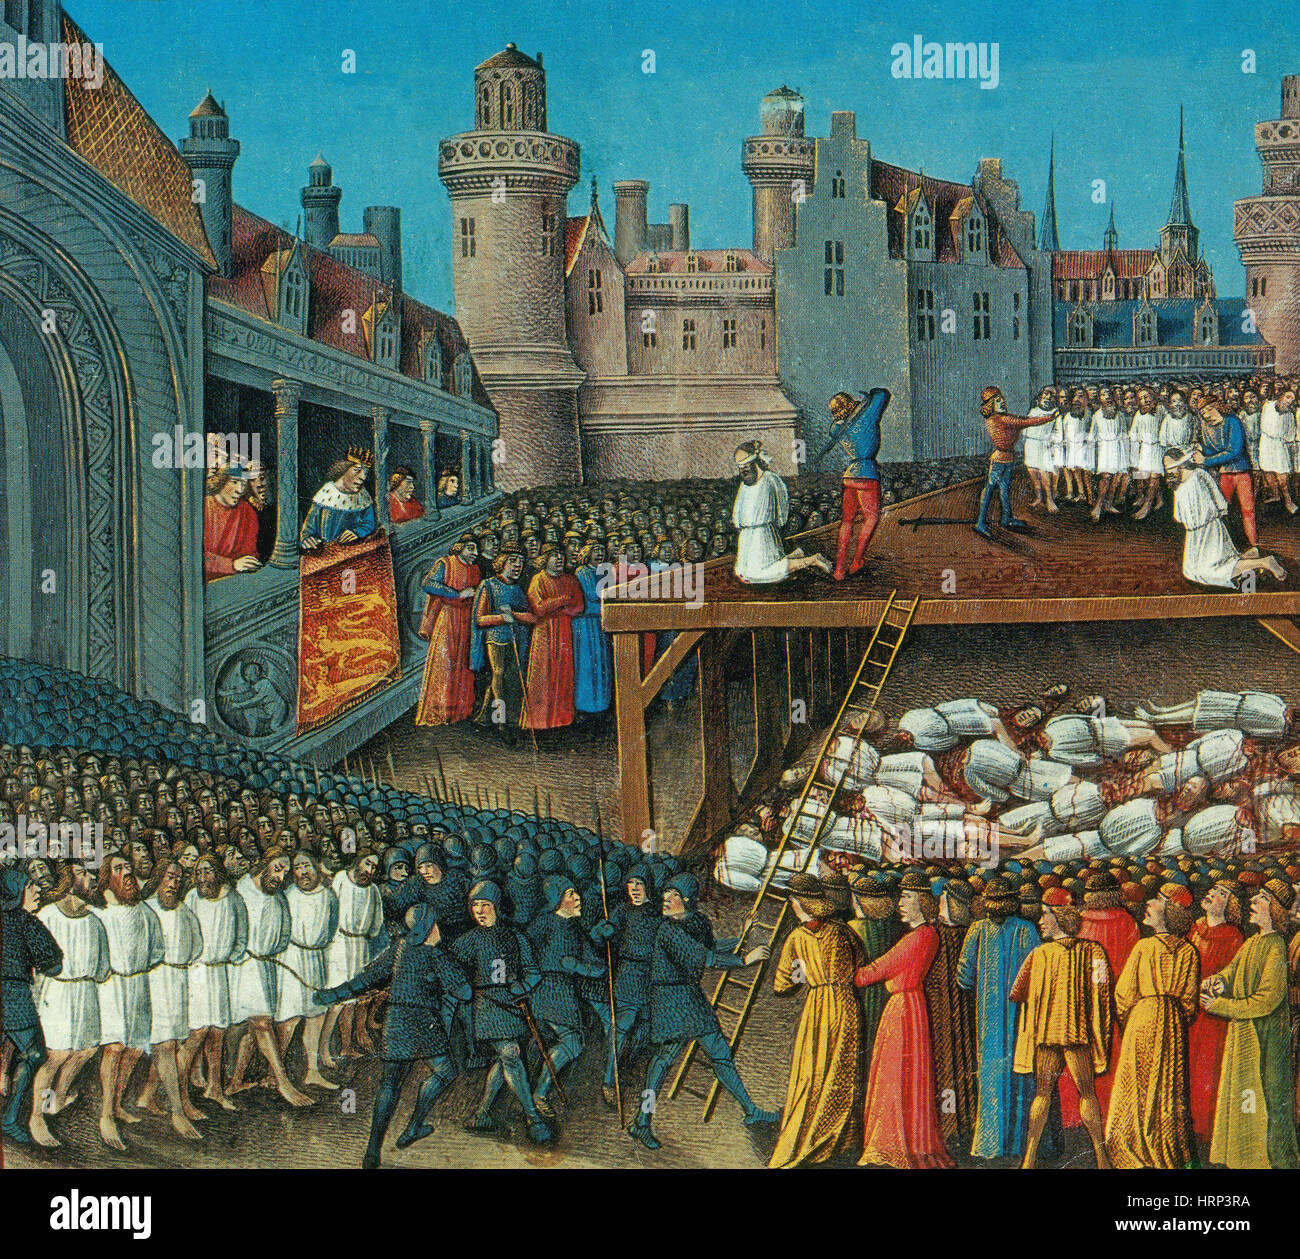 Third Crusade, Saracen Hostage Massacre, 1191